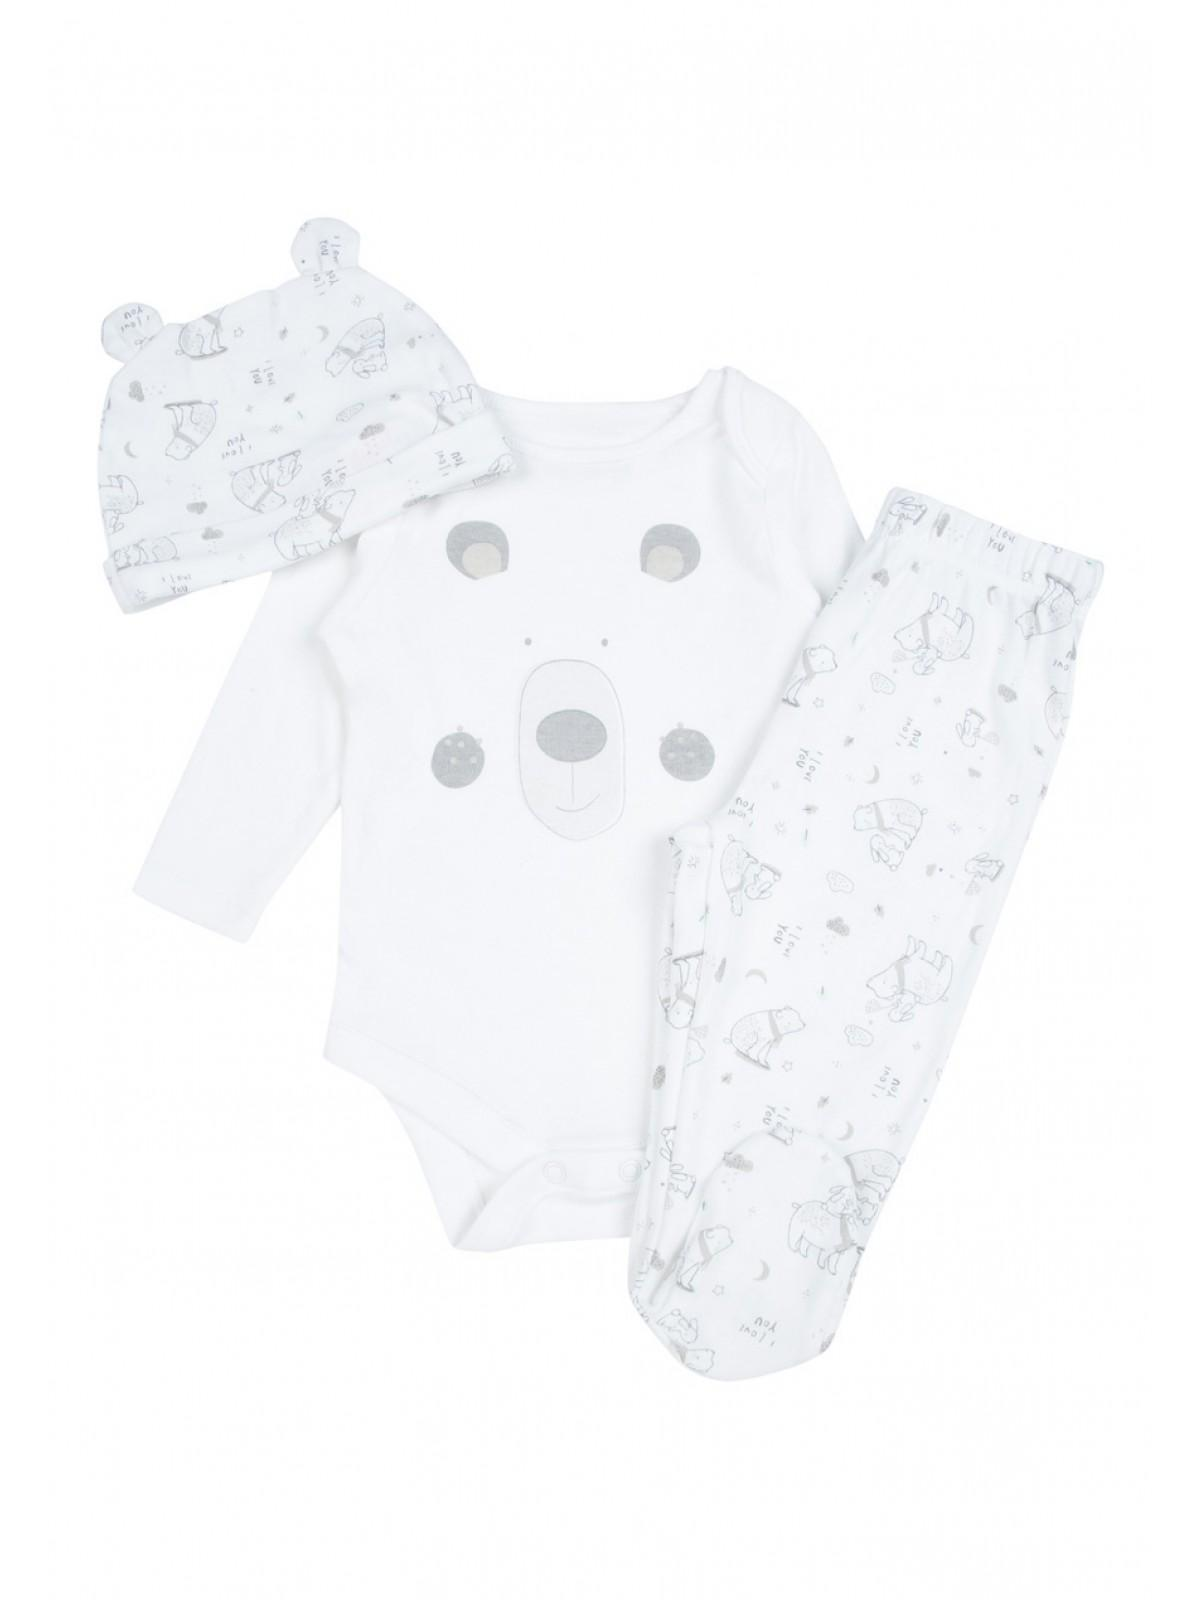 This cute sleepsuit is an essential gift for any mum to be.